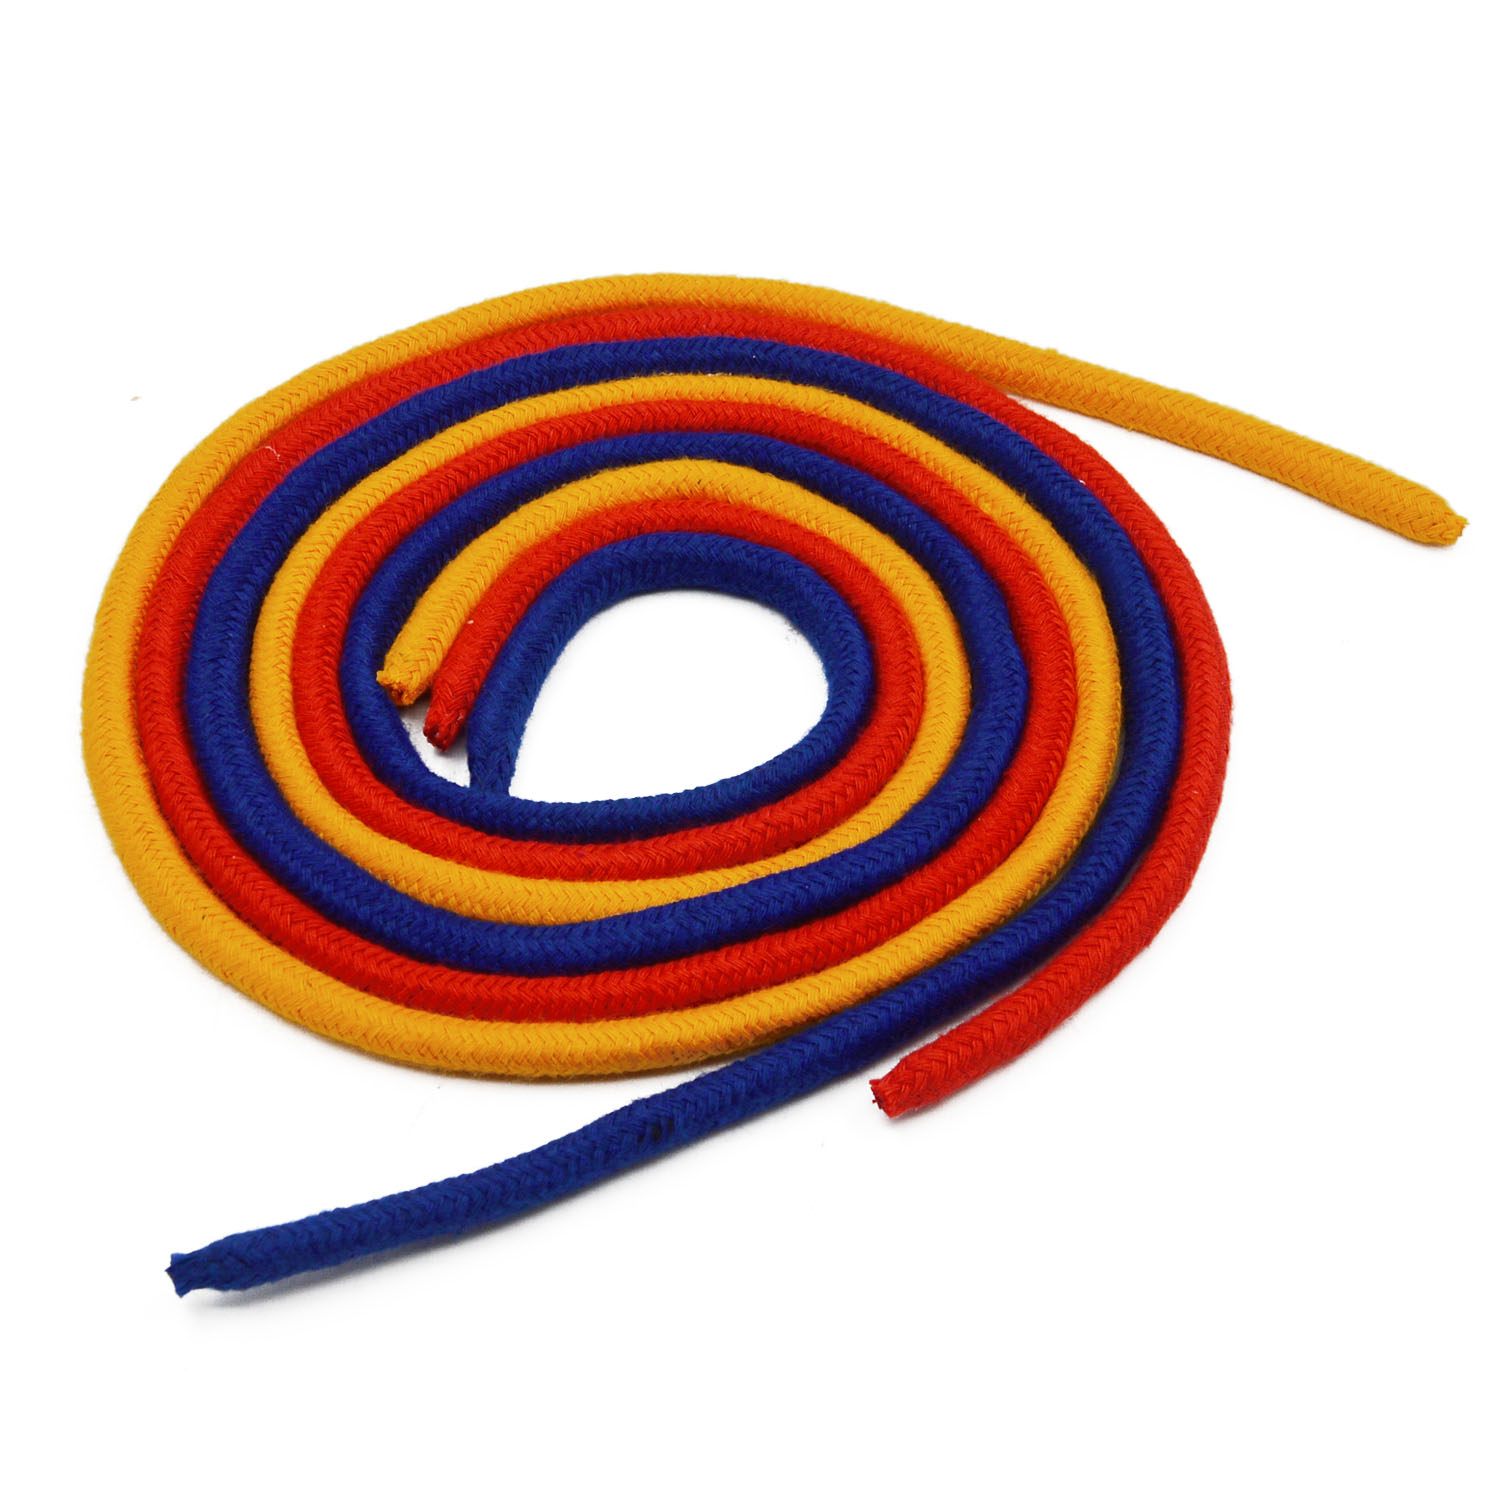 Three Strings Linking Ropes Magic Trick Magic Close-up Performance Accessories Red&Yellow& Blue Rope Props Magic Tricks Tool Toy